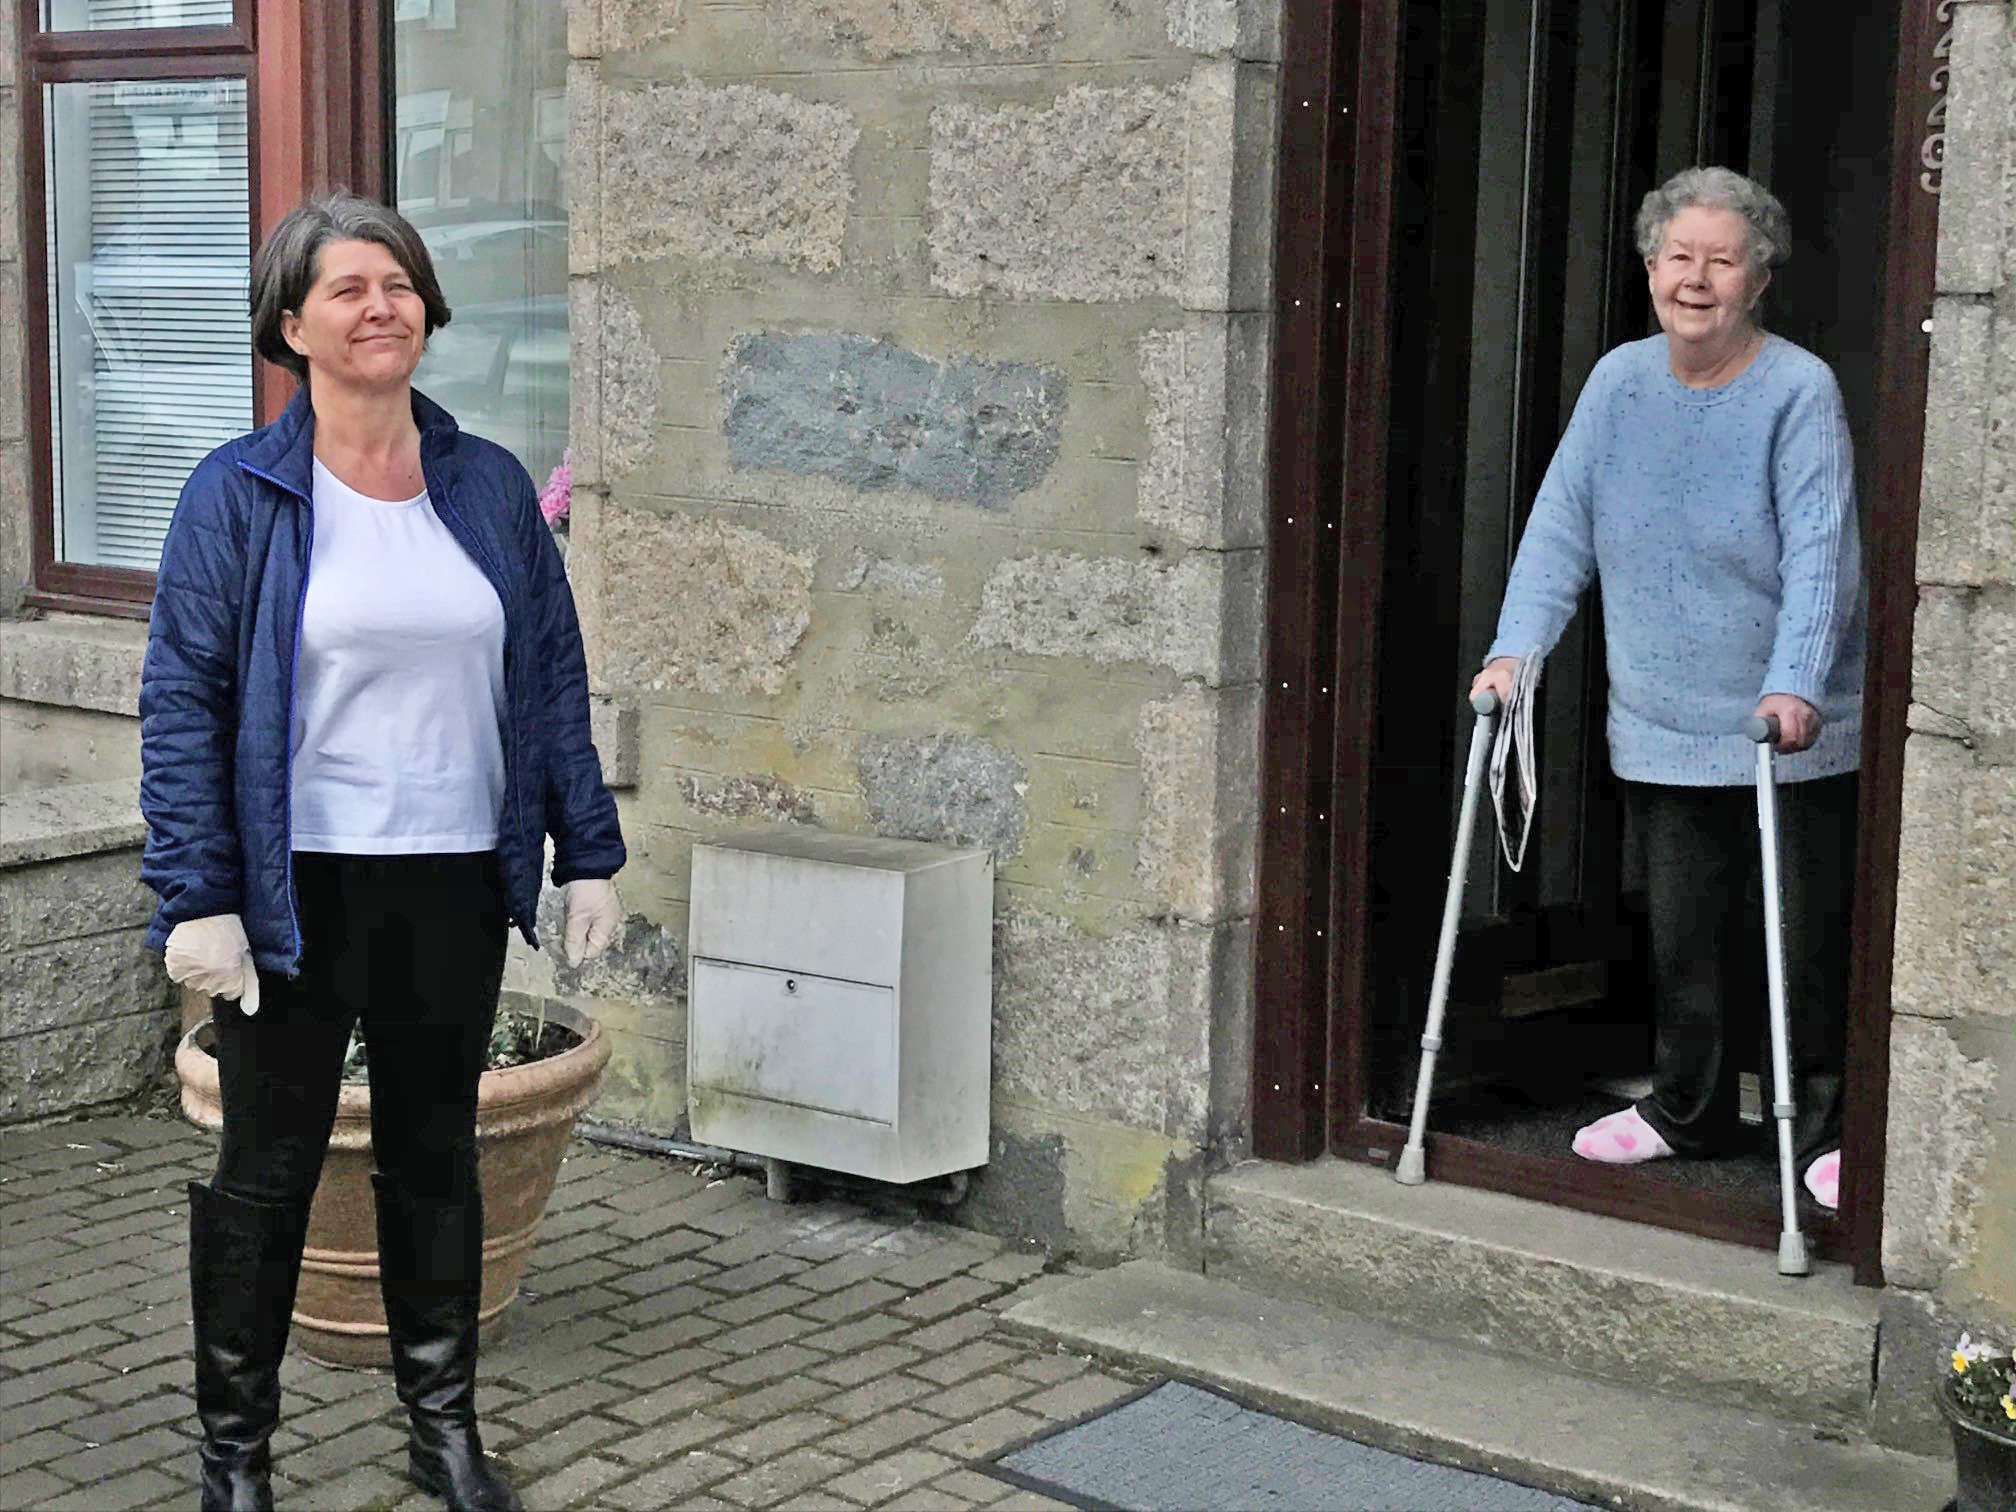 Councillor Marie Boulton, a member of the core resilience team, checking up on Vulnerable resident Elizabeth